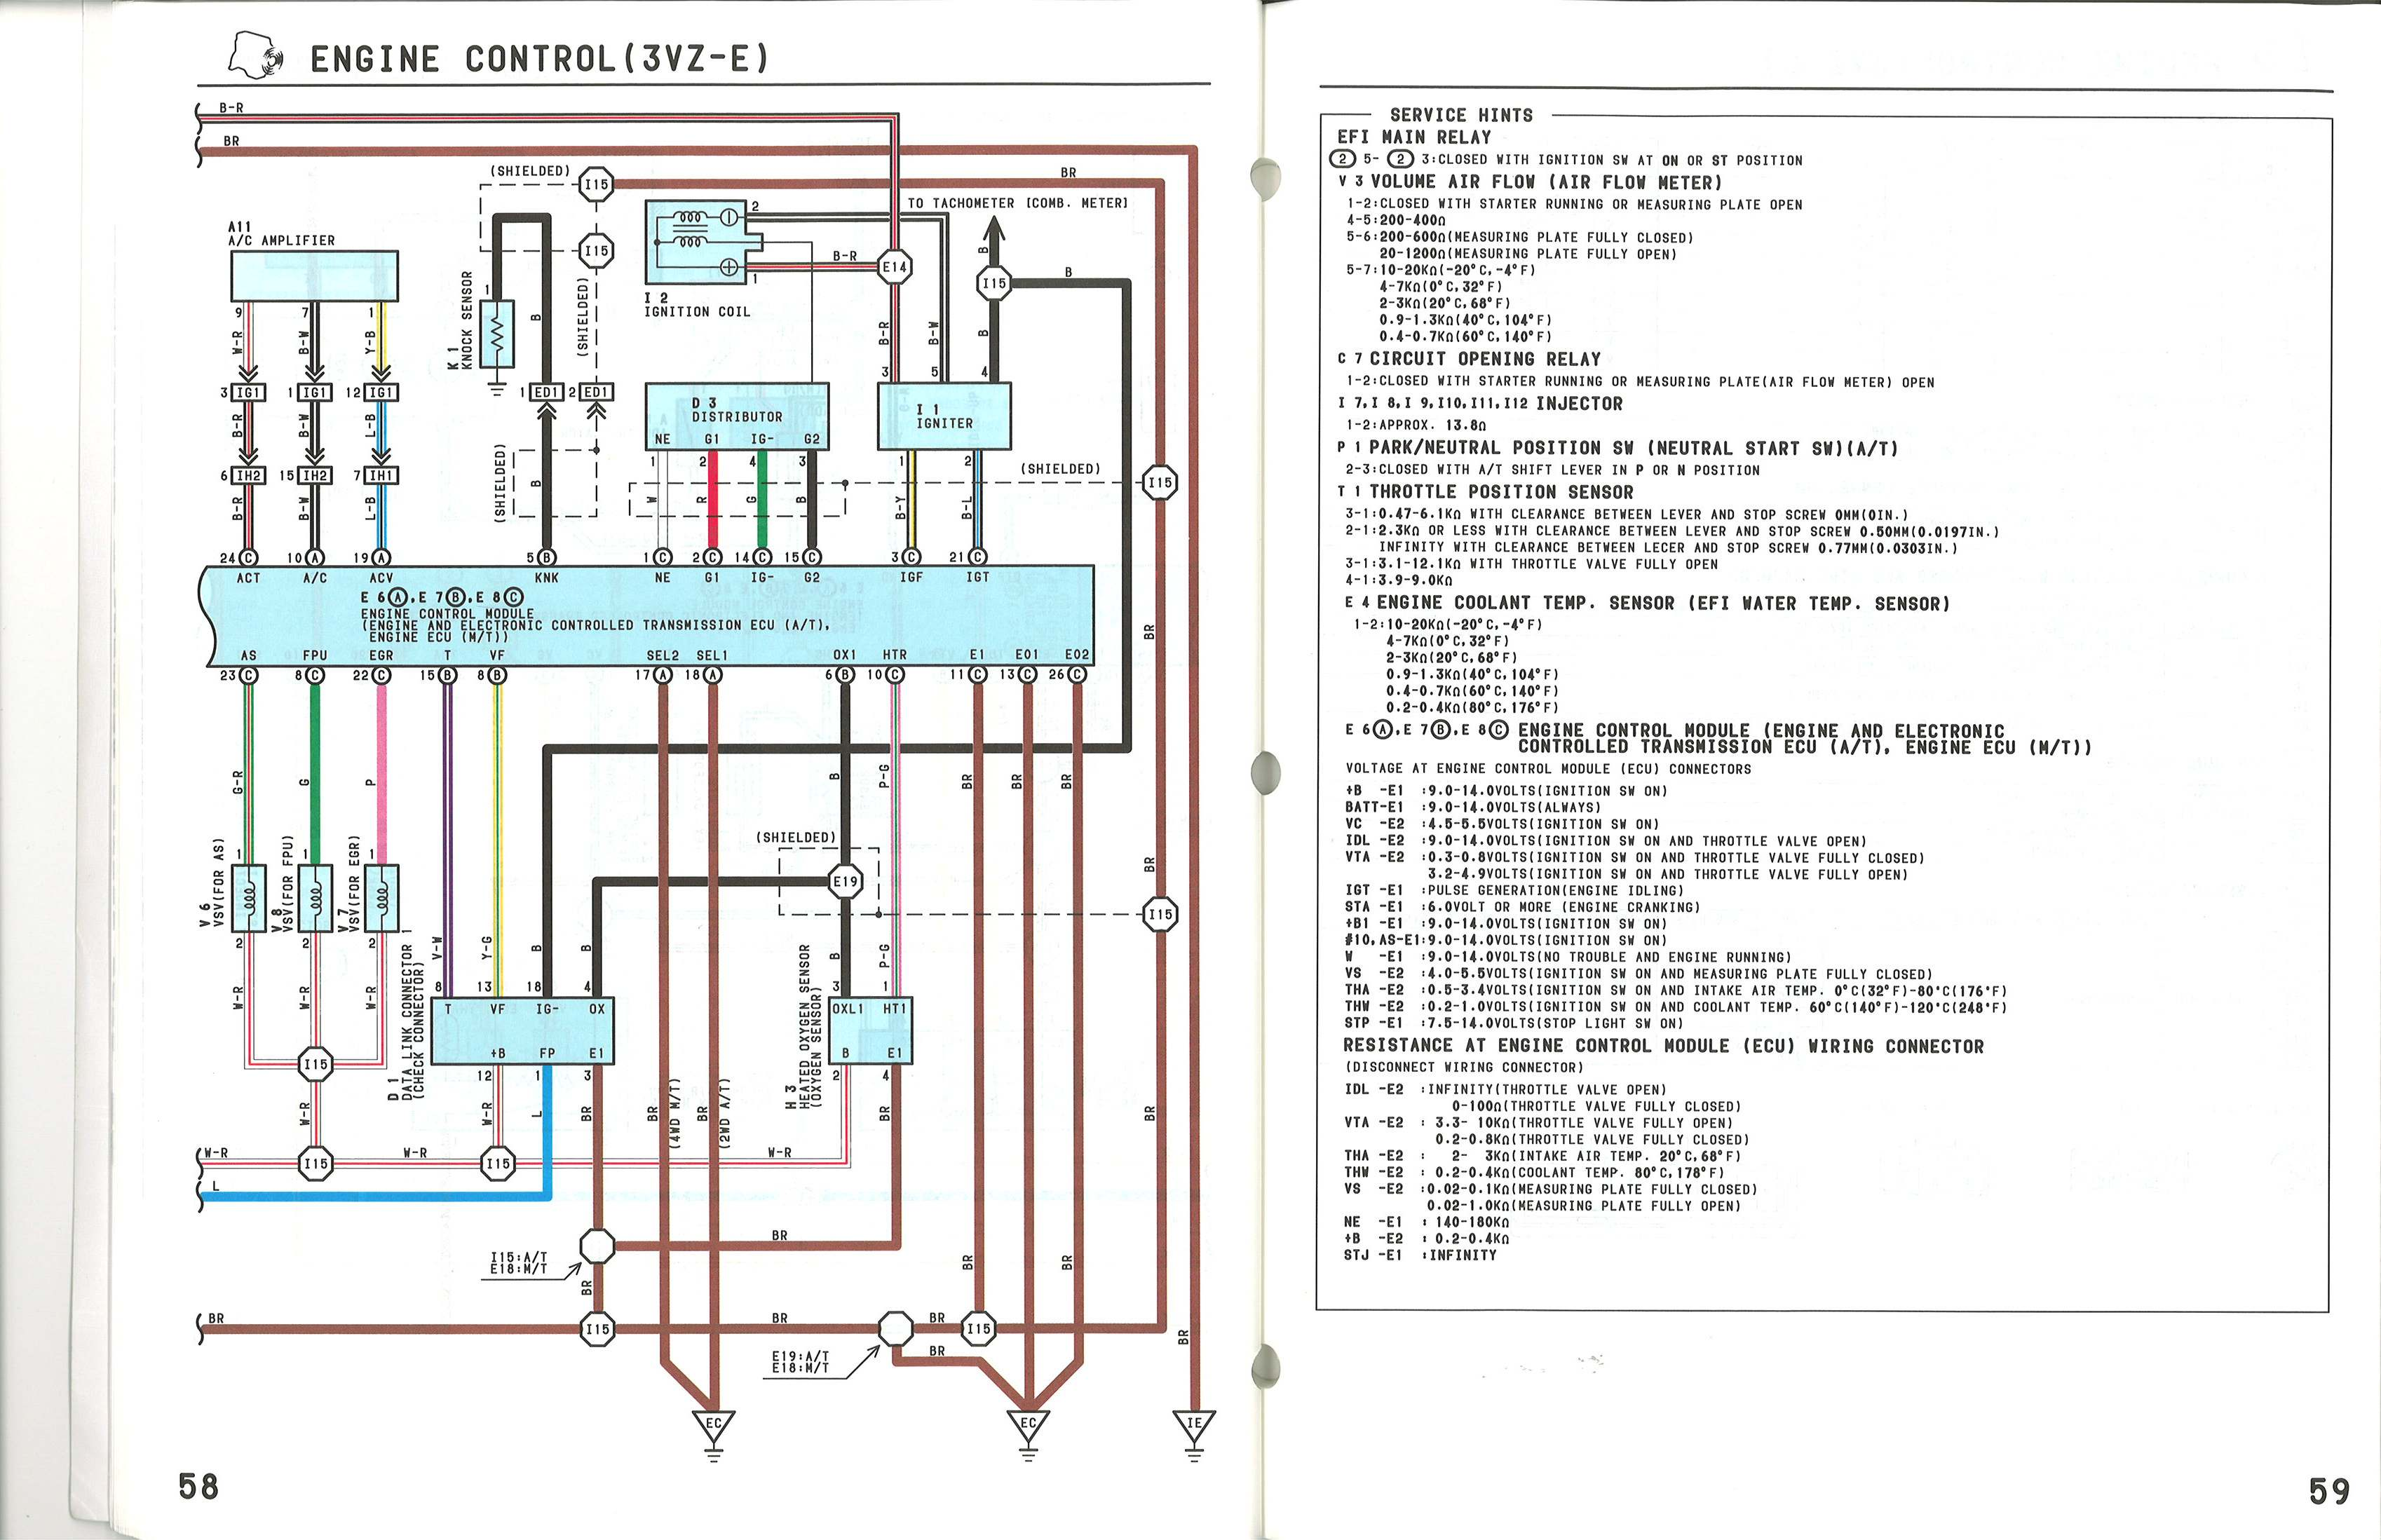 Engine_Control_3vze_3 ecu diagram for 1988 3vz e yotatech forums toyota highlander ecu wiring diagram at reclaimingppi.co